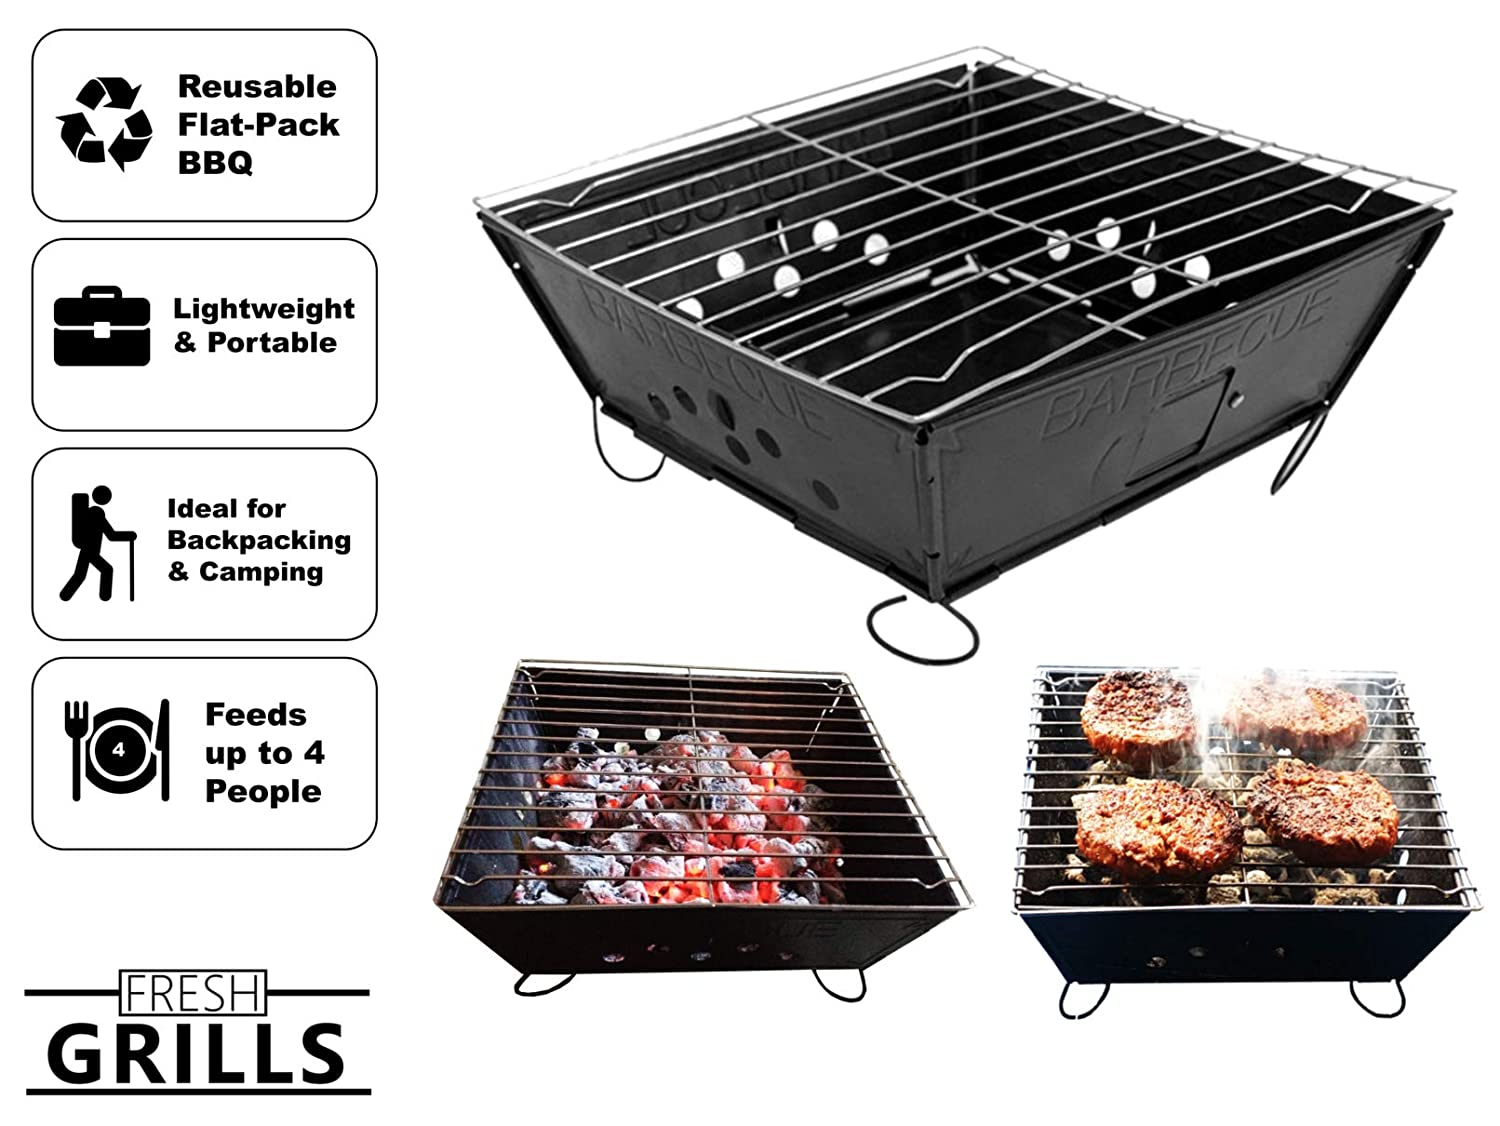 Bar-be-quick Disposable Instant Charcoal Bbq Home & Garden Twin Pack New Varieties Are Introduced One After Another